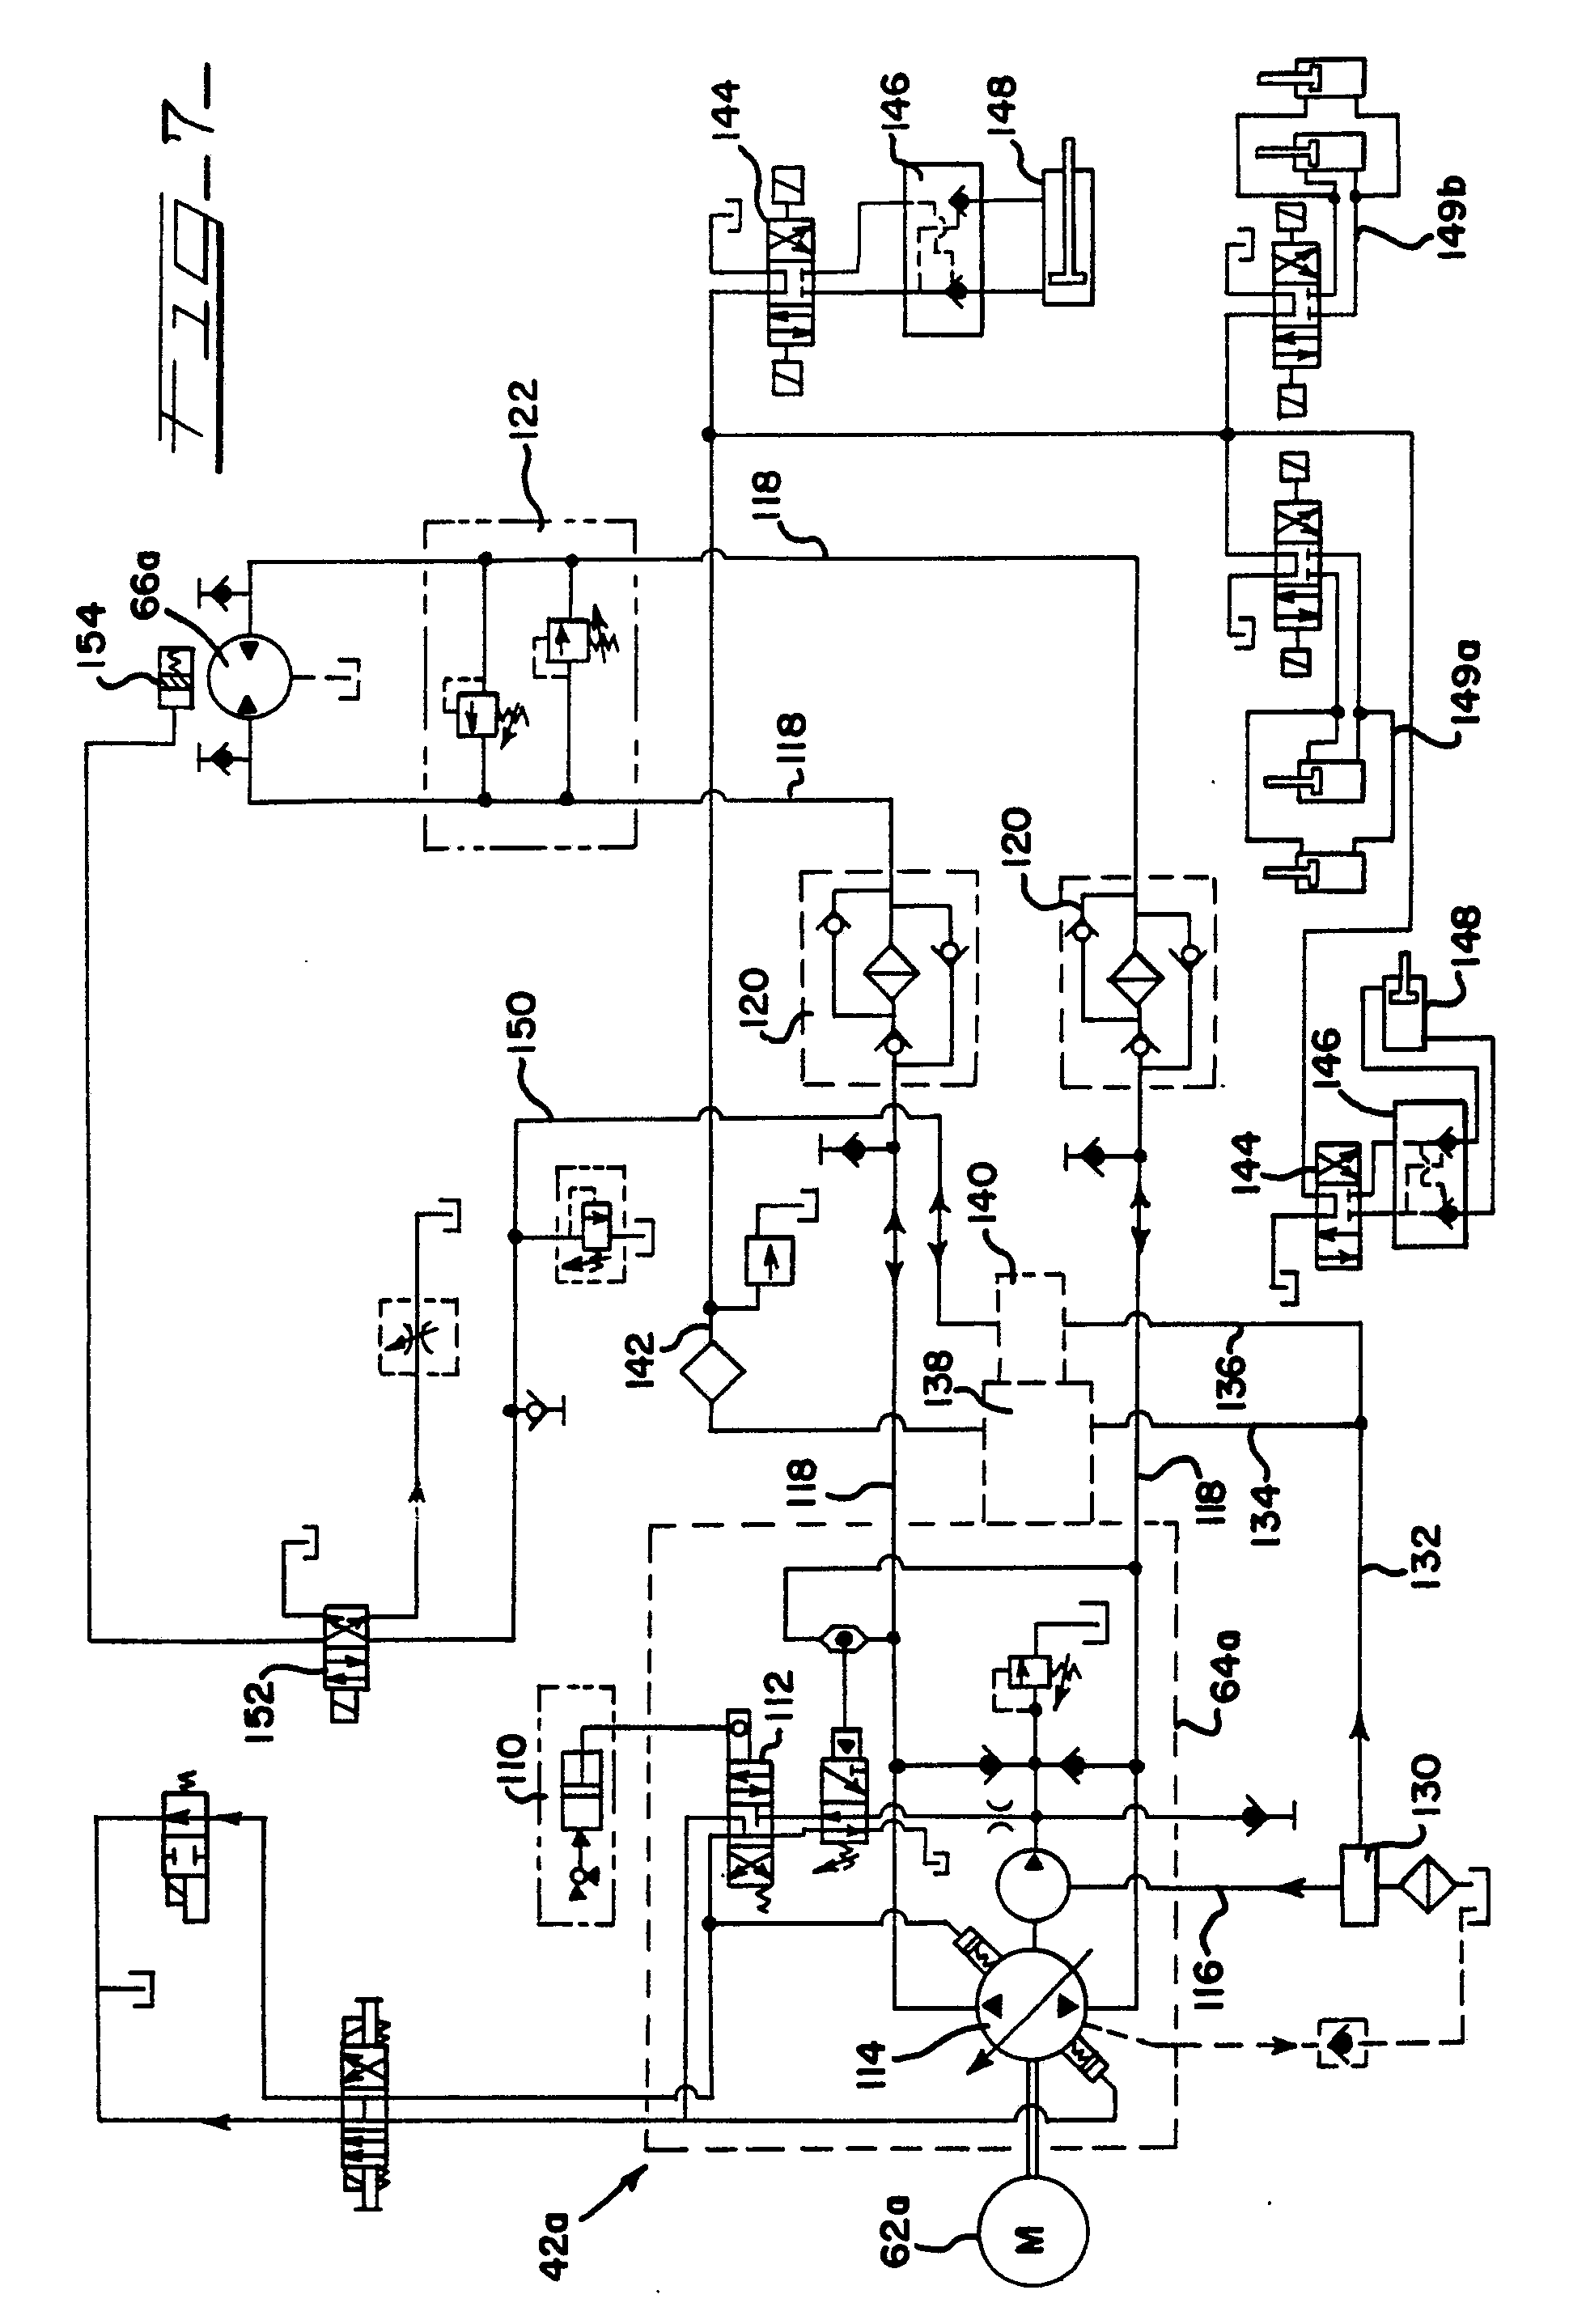 Simple Hydraulic Circuit Diagram